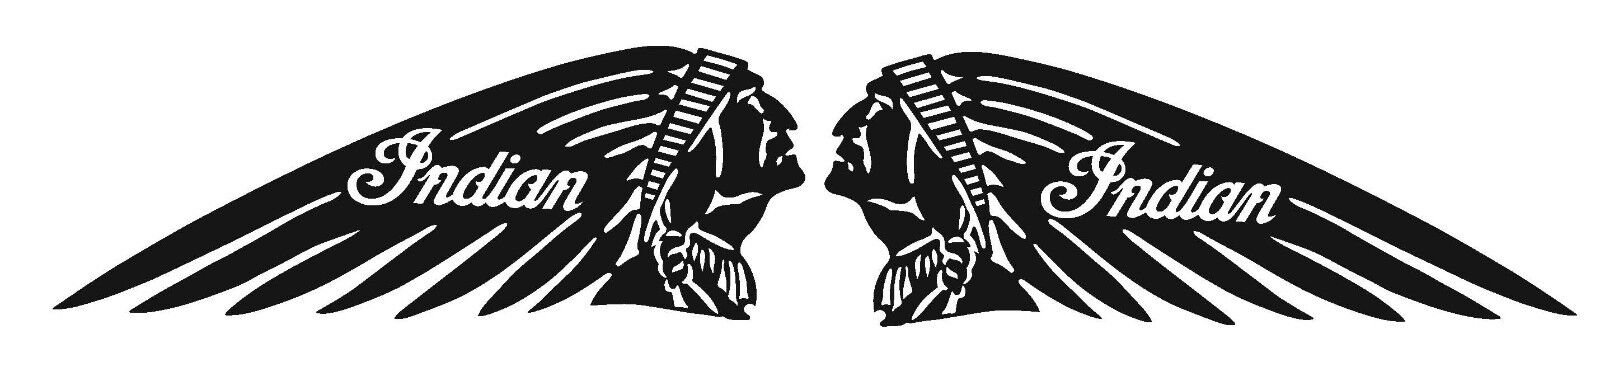 Home Decoration - Indian Motorcycle (2) Vinyl Decal / Sticker ** 5 Sizes **